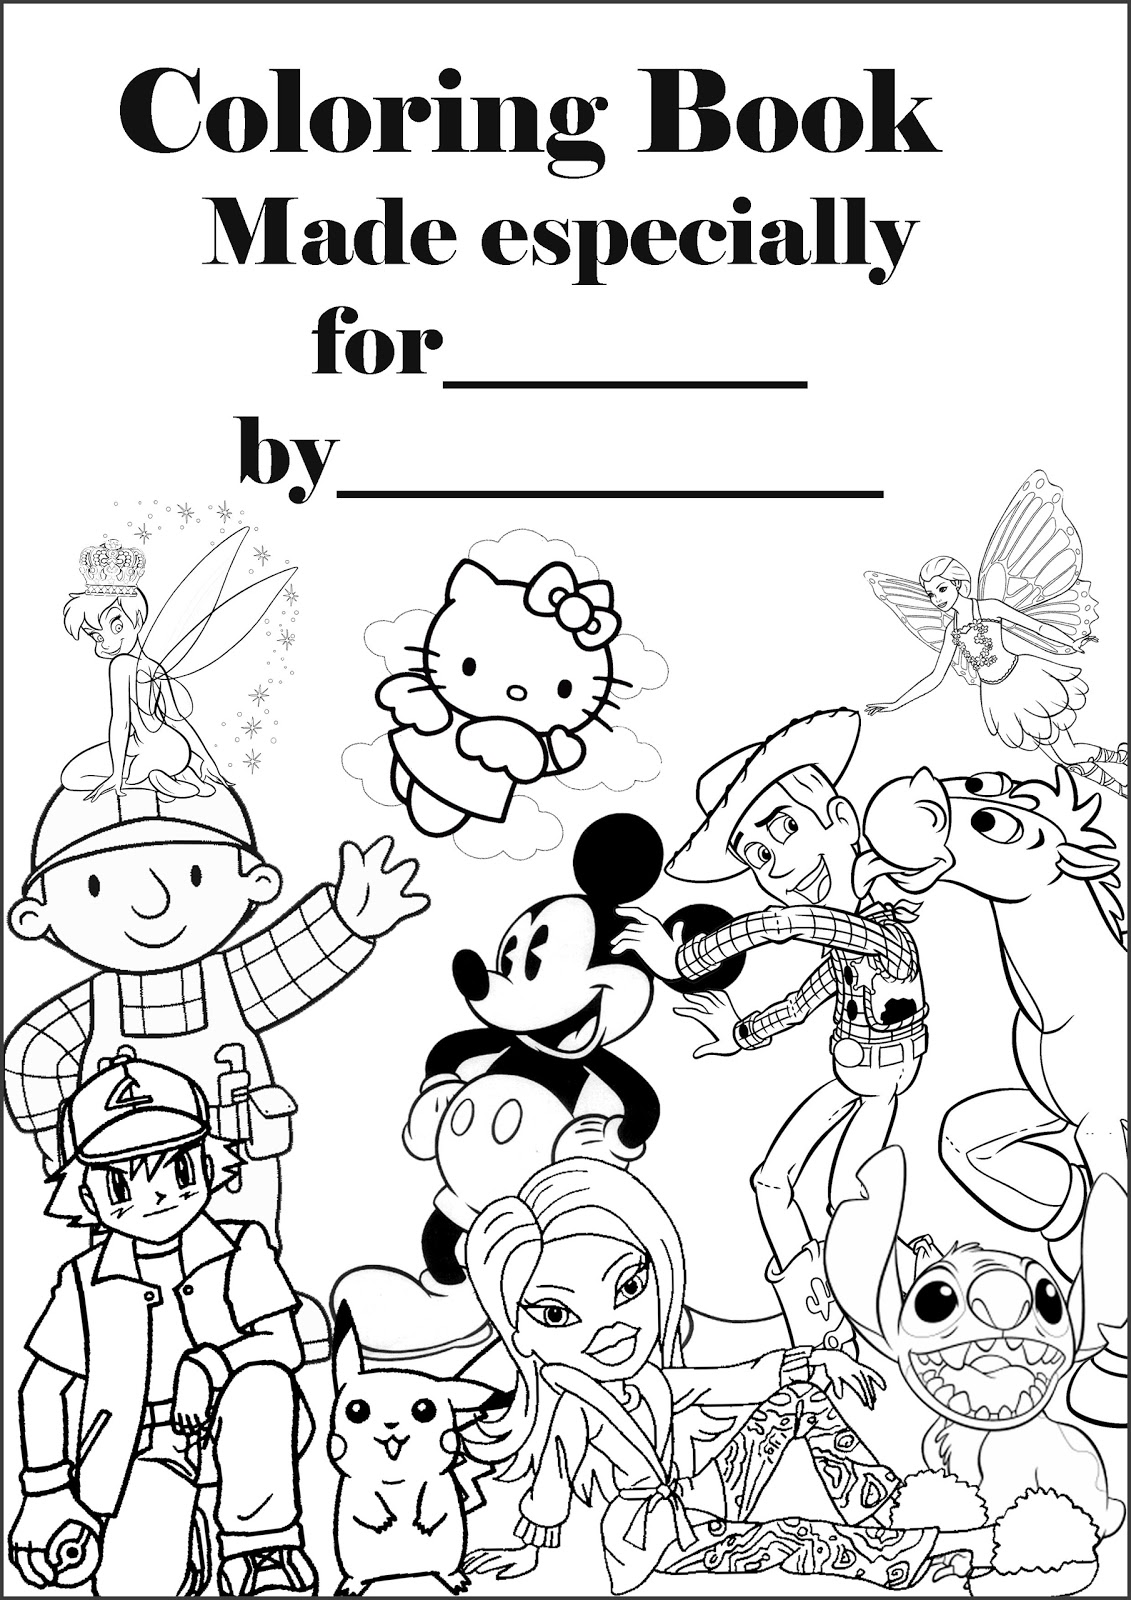 book coloring pages - photo#35